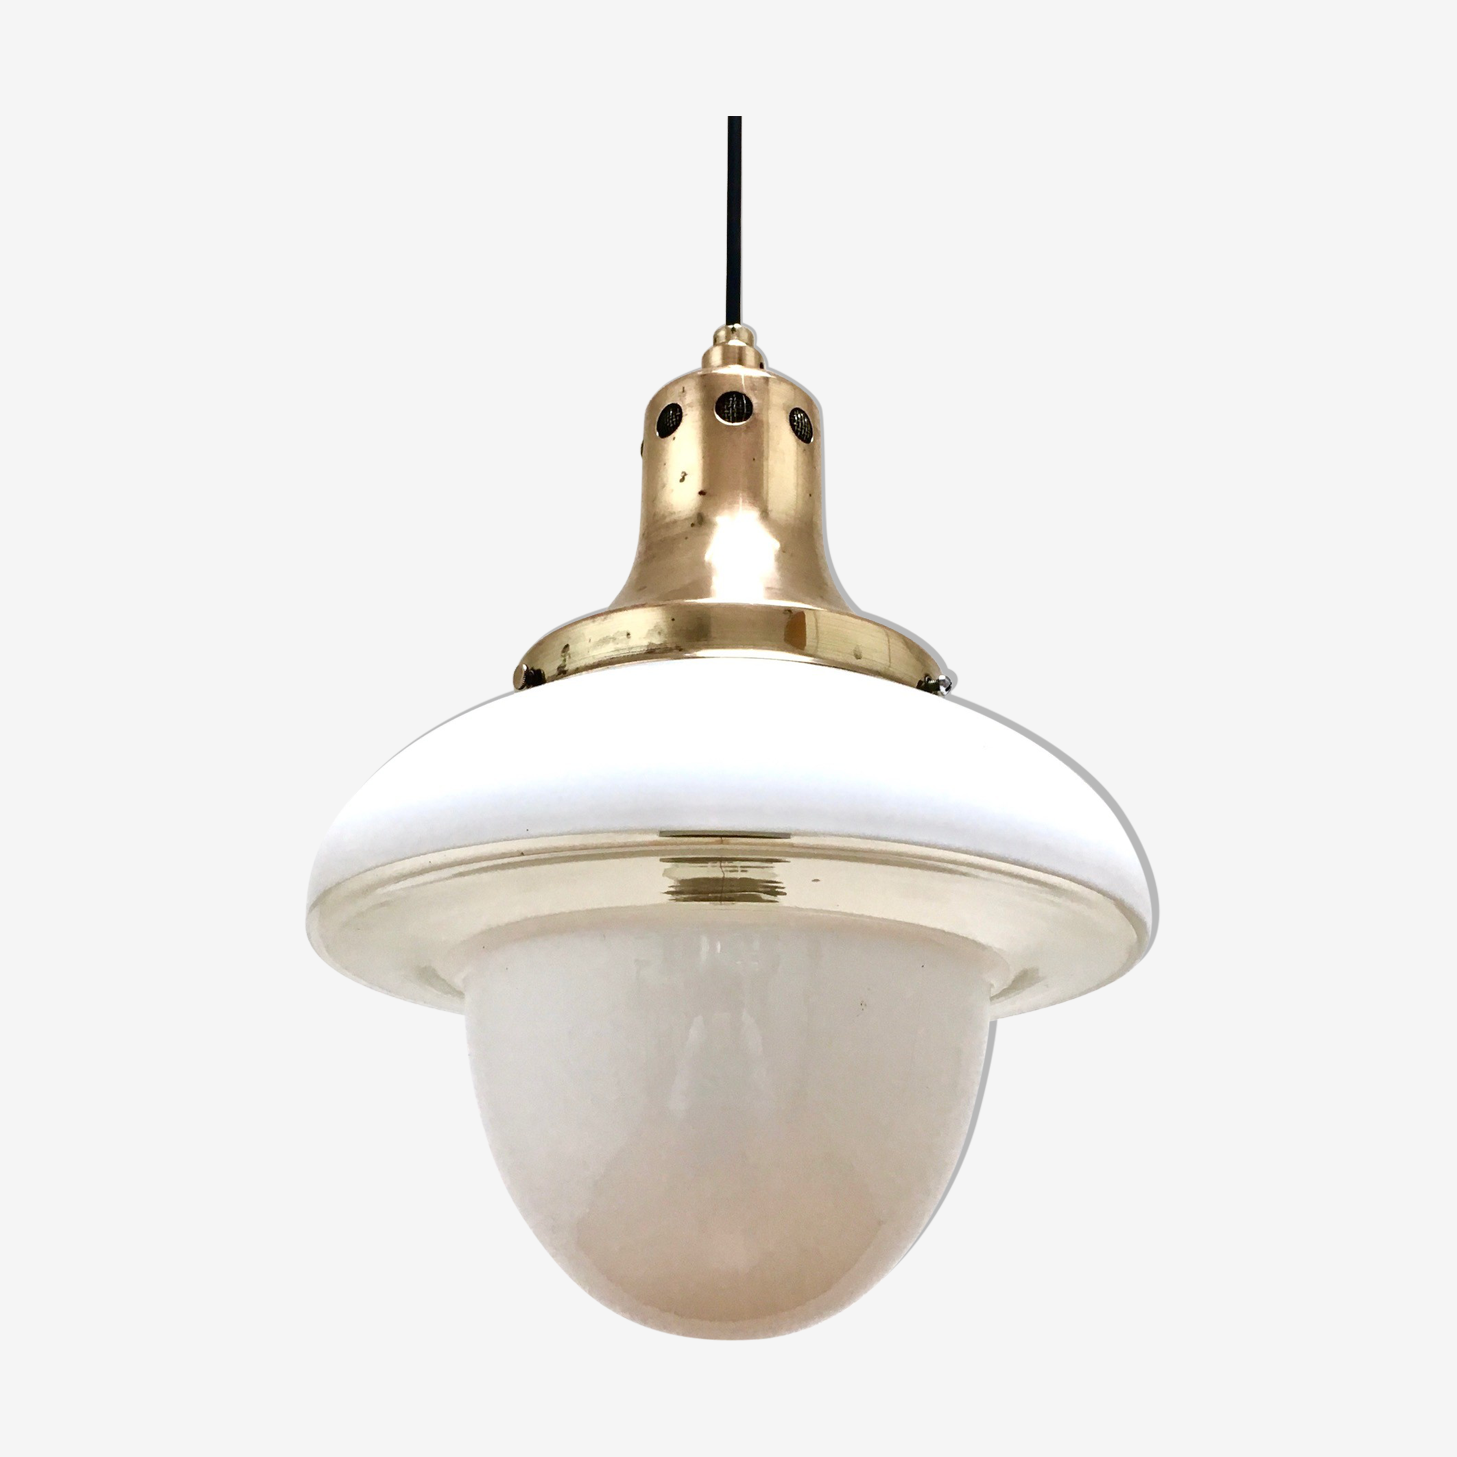 Suspension opaline circa 1950